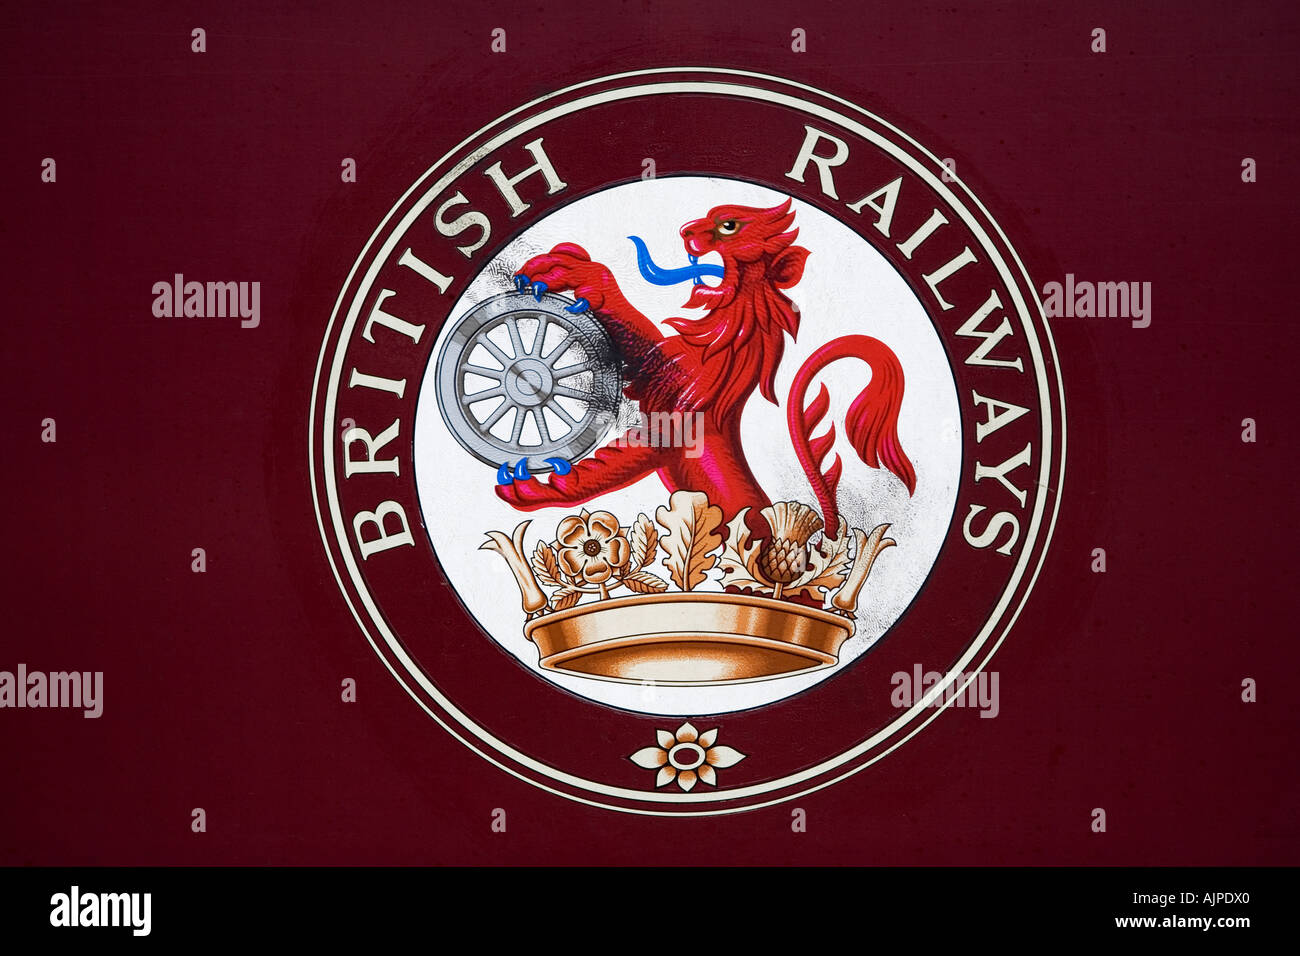 British railways coat of arms on a carriage on the llangollen british railways coat of arms on a carriage on the llangollen railway denbighshire north wales buycottarizona